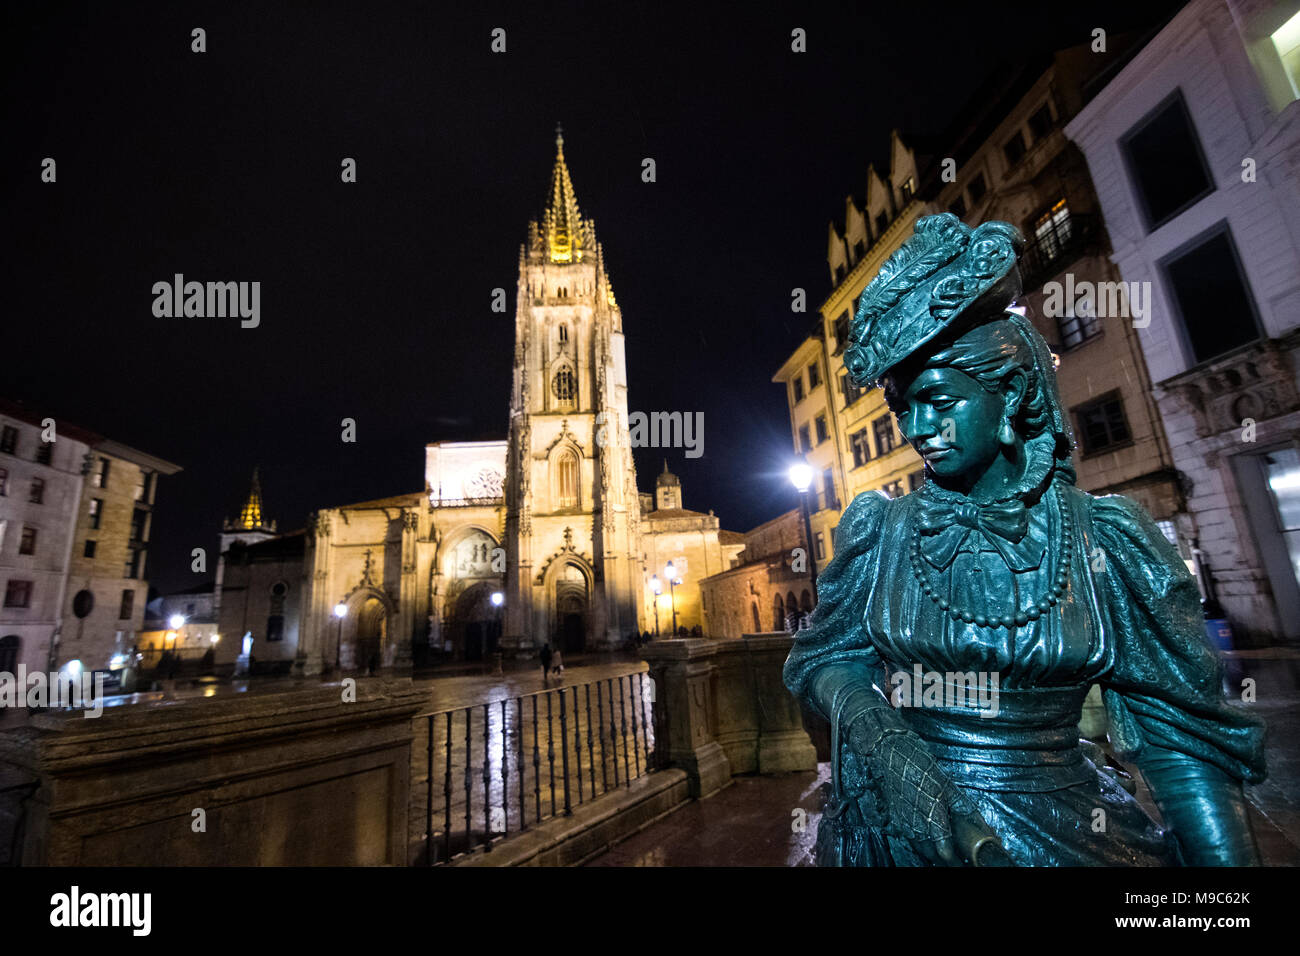 Oviedo, Spain. 24th March, 2018. UNESCO World Heritage Site, Oviedo Cathedral of San Salvador, before the lights were turned off during the Earth Hour 2018 environmental campaing on March 24, 2018 in Oviedo, Spain. This is an annual light-off enronmental event organised by the WWF (World Wide Fund for NAture) o raise awareness of climate change. ©David Gato/Alamy Live News - Stock Image